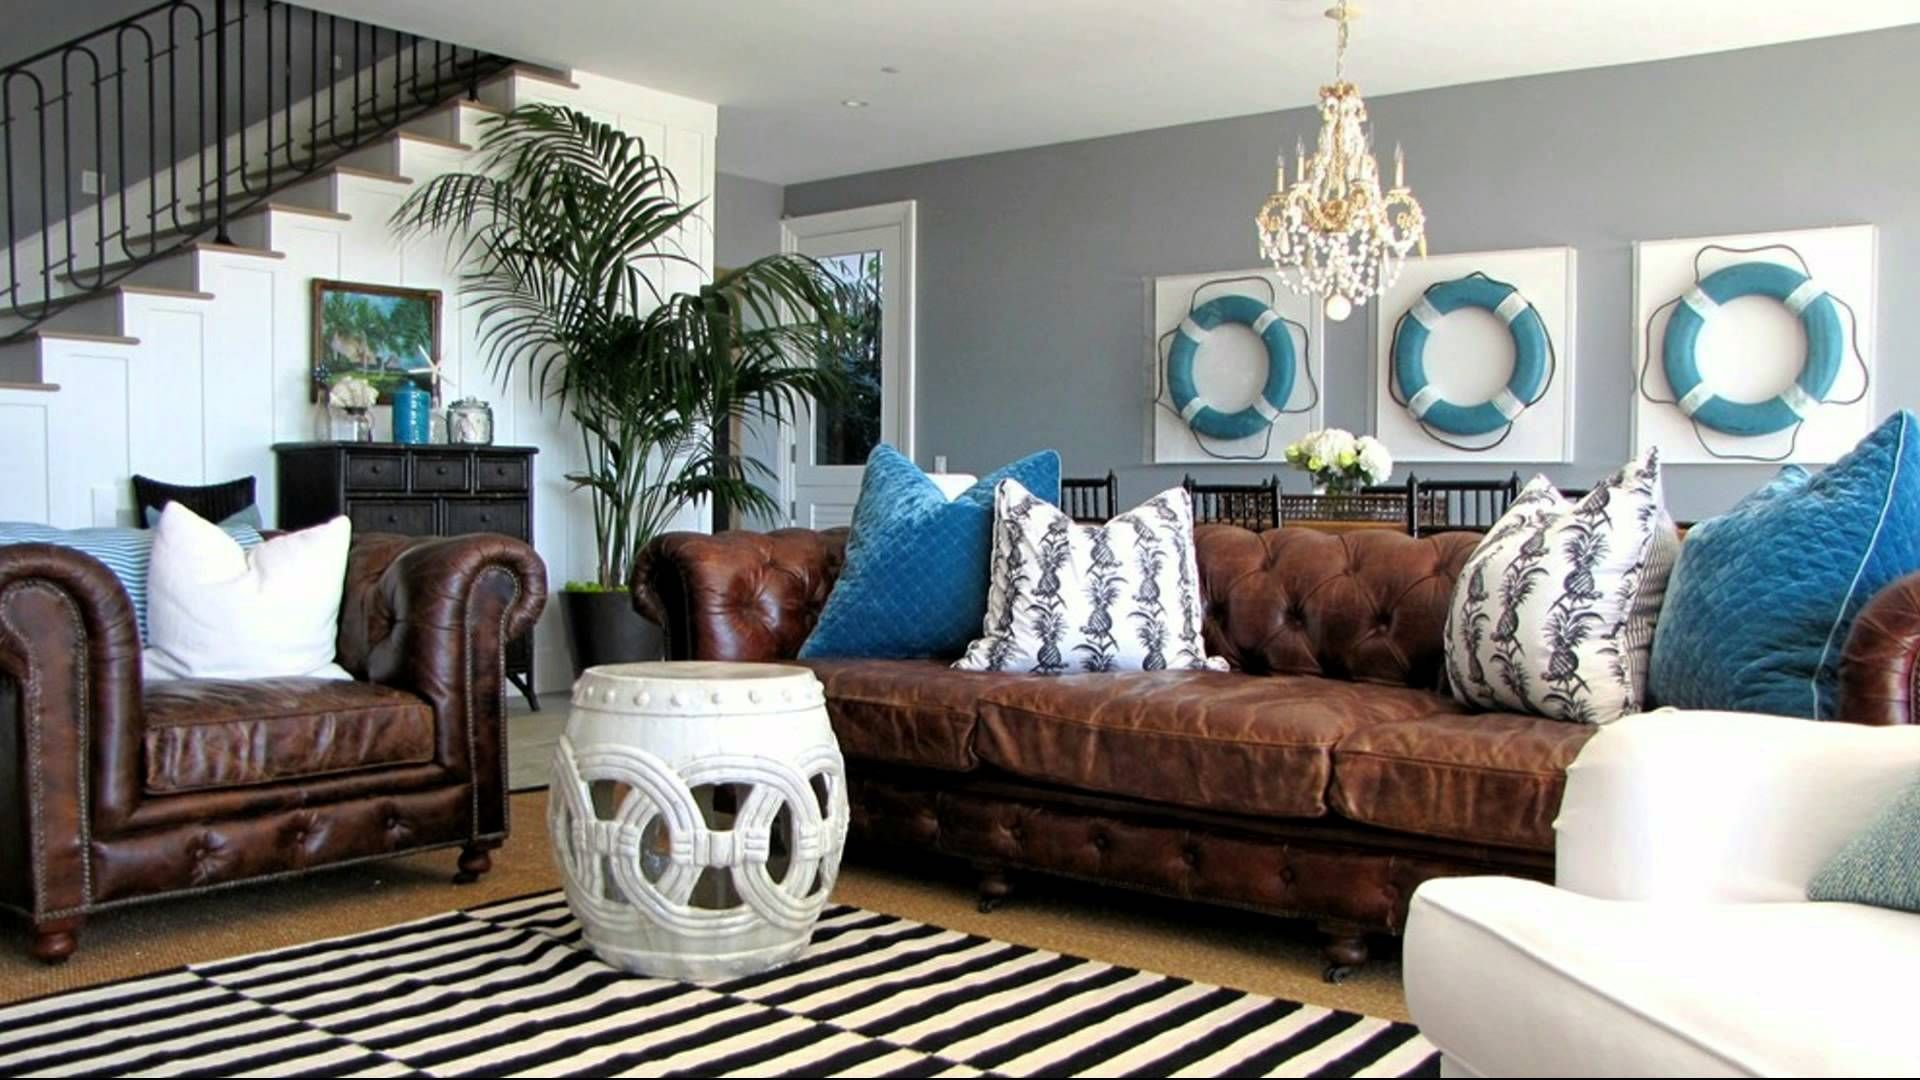 Enchanting house interior ideas and beach design nautical themed decorating also rh pinterest